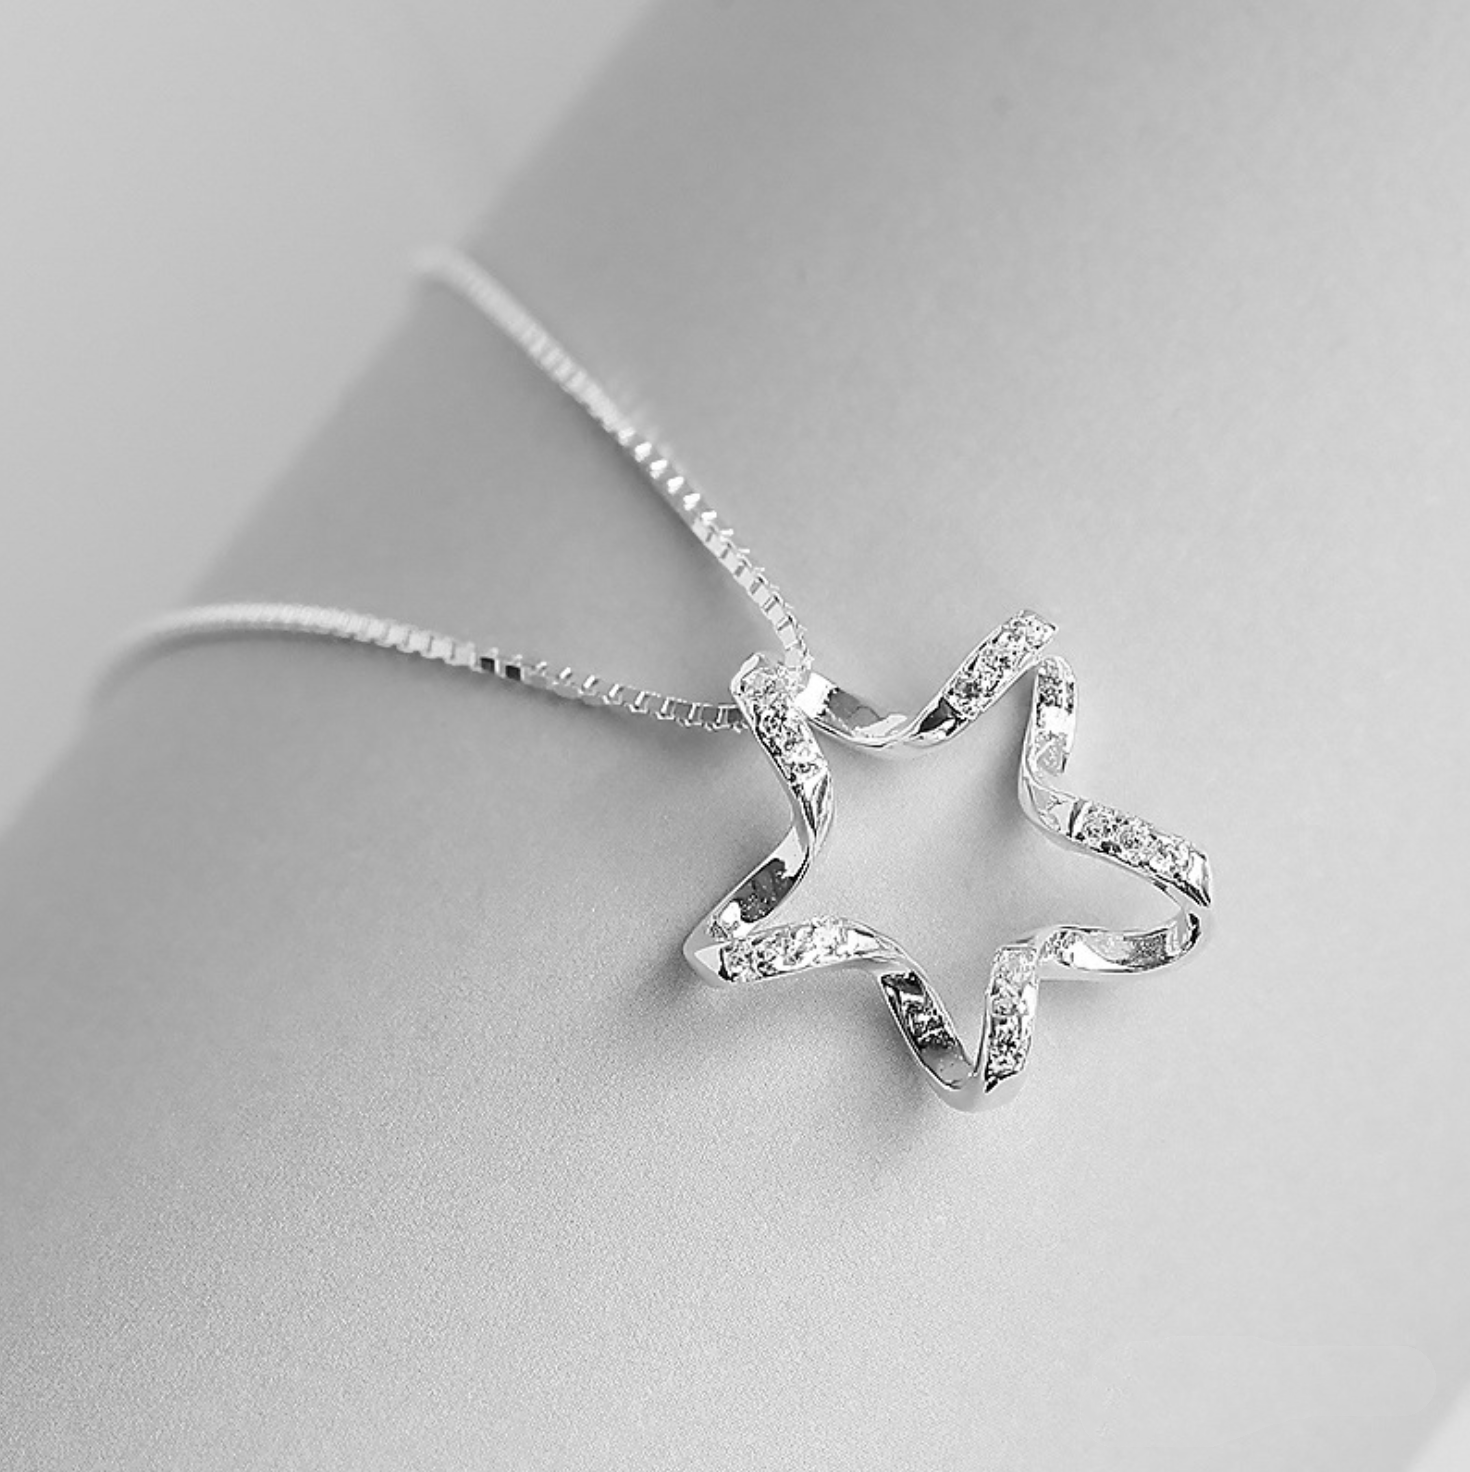 Jewellery - Star Winded 925 Sterling Silver Pendant Chain Necklace Womens Girls Jewellery UK